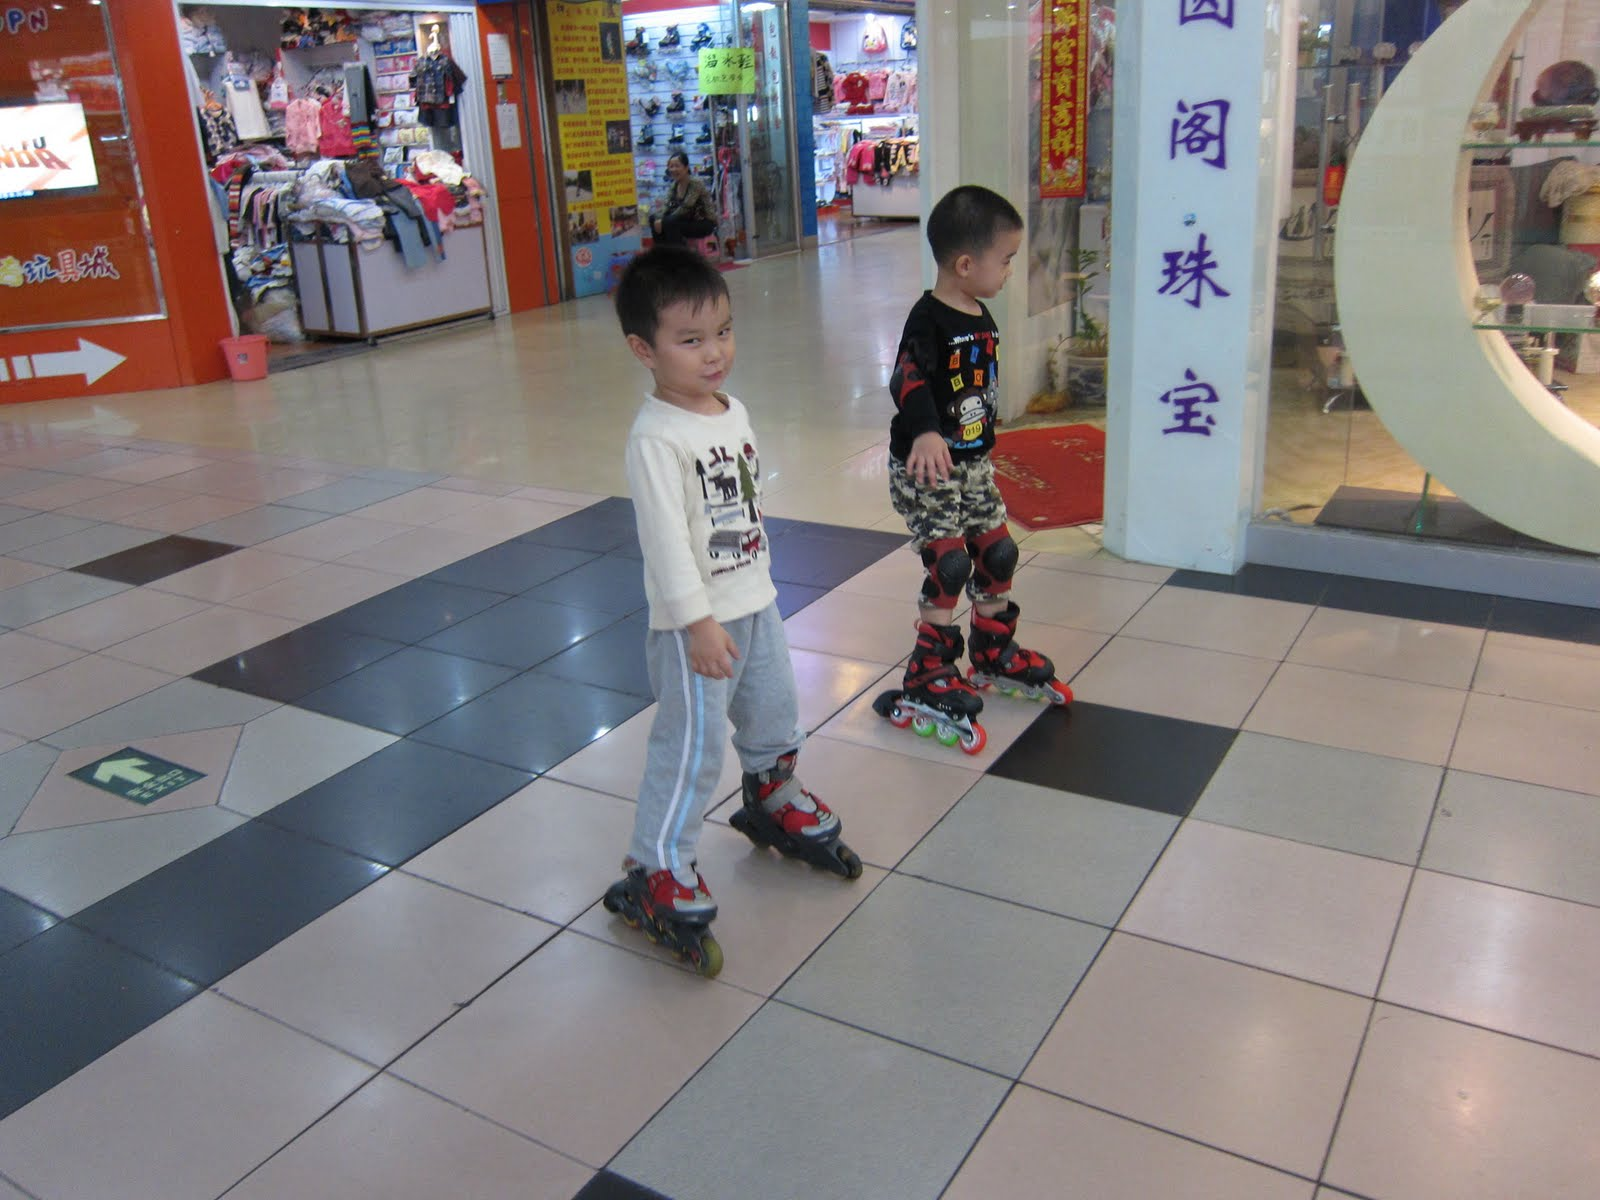 china pissing Last time I was in China I saw a three year old pissing in the corner of a  shopping mall while his mom squatted to shield him.